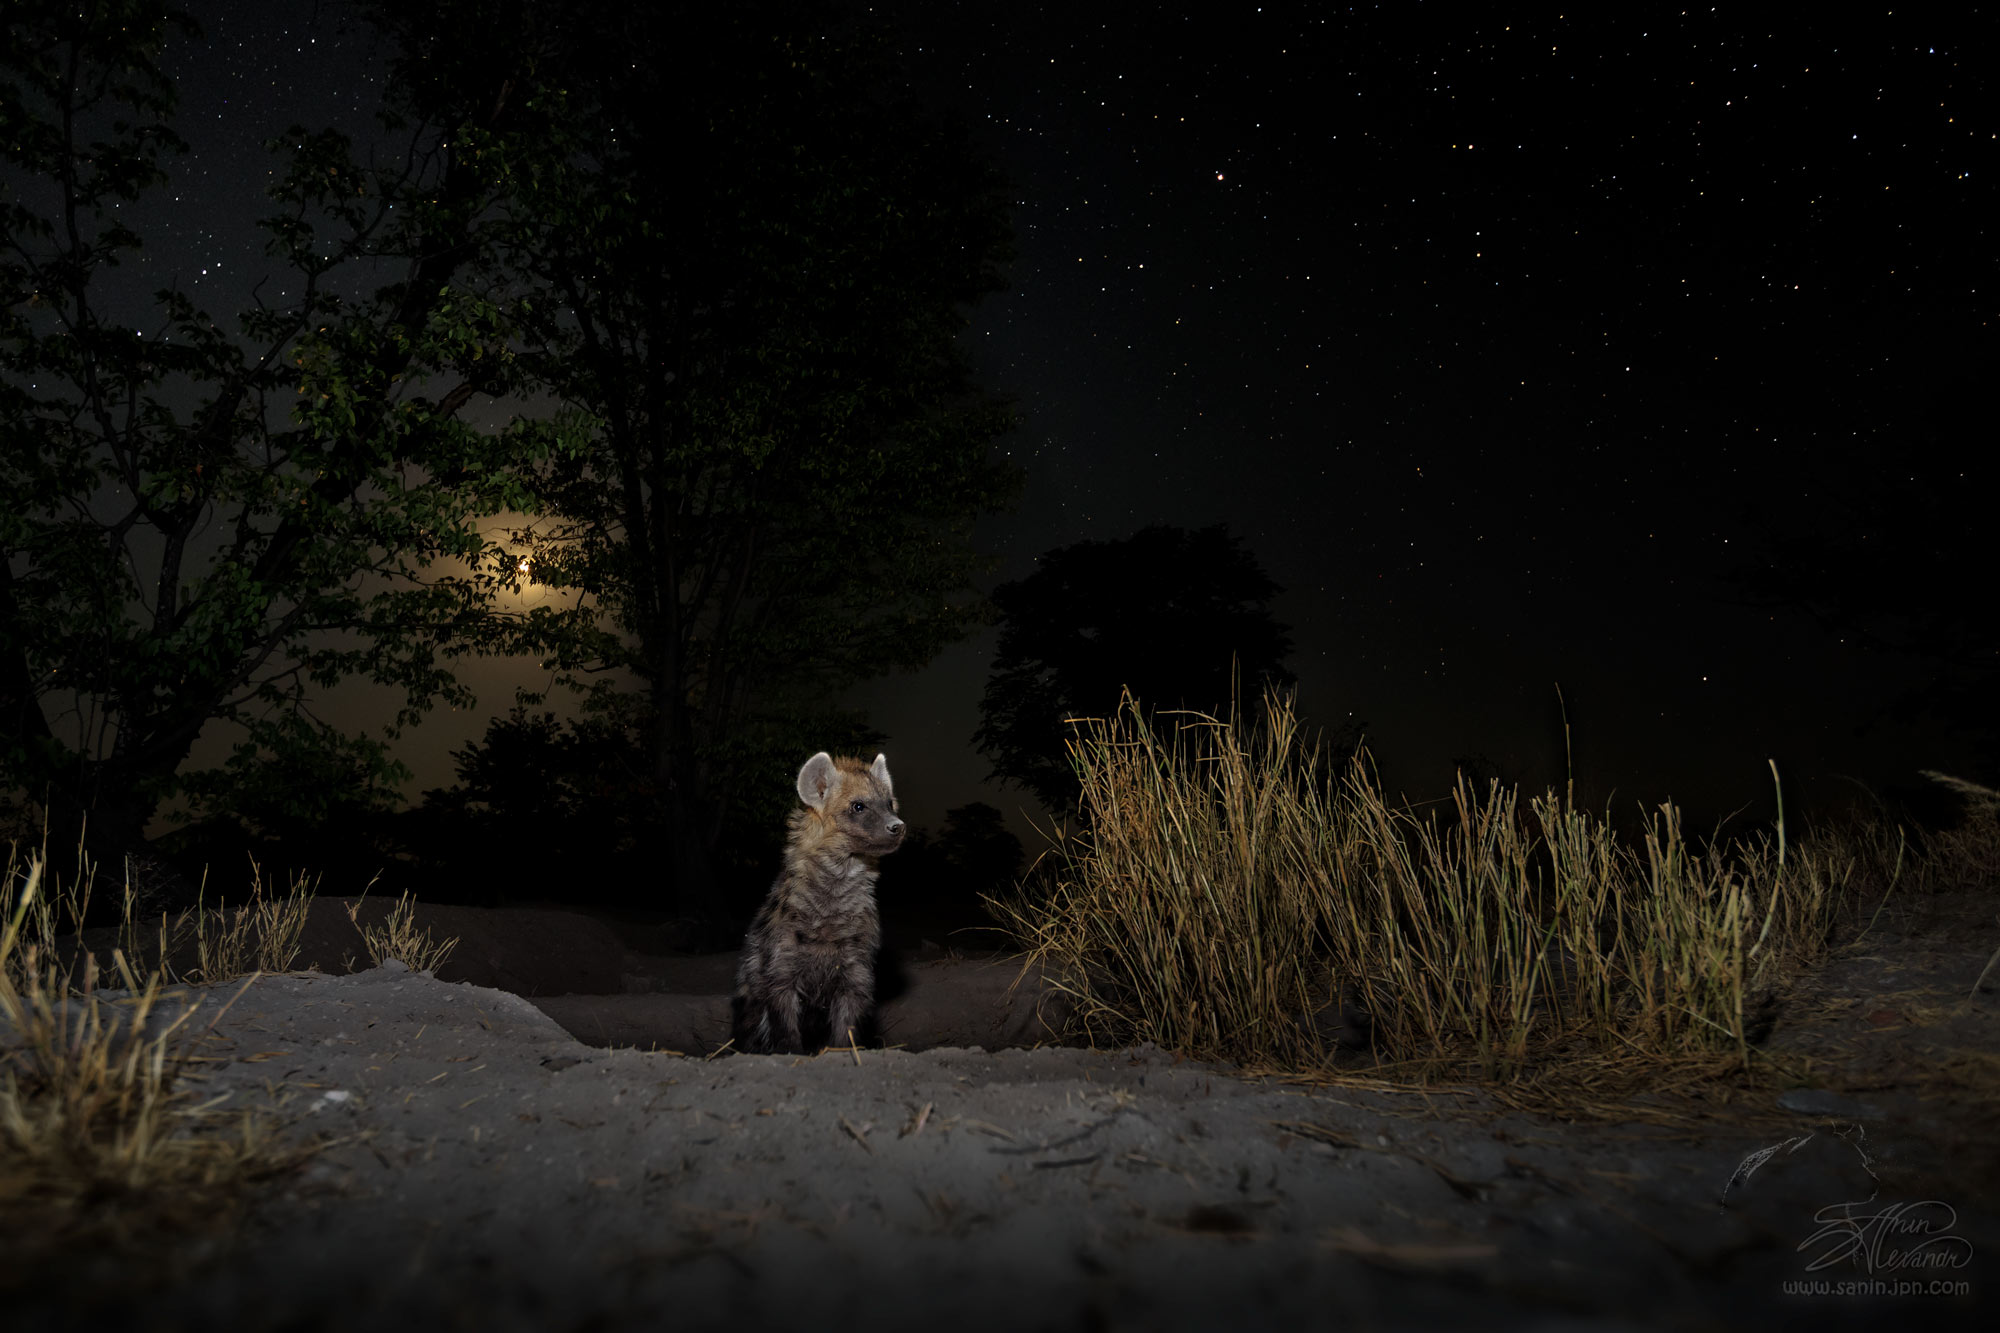 Hyena cub comes out of the den.Moon at the background. Photographed by the Beetlecam